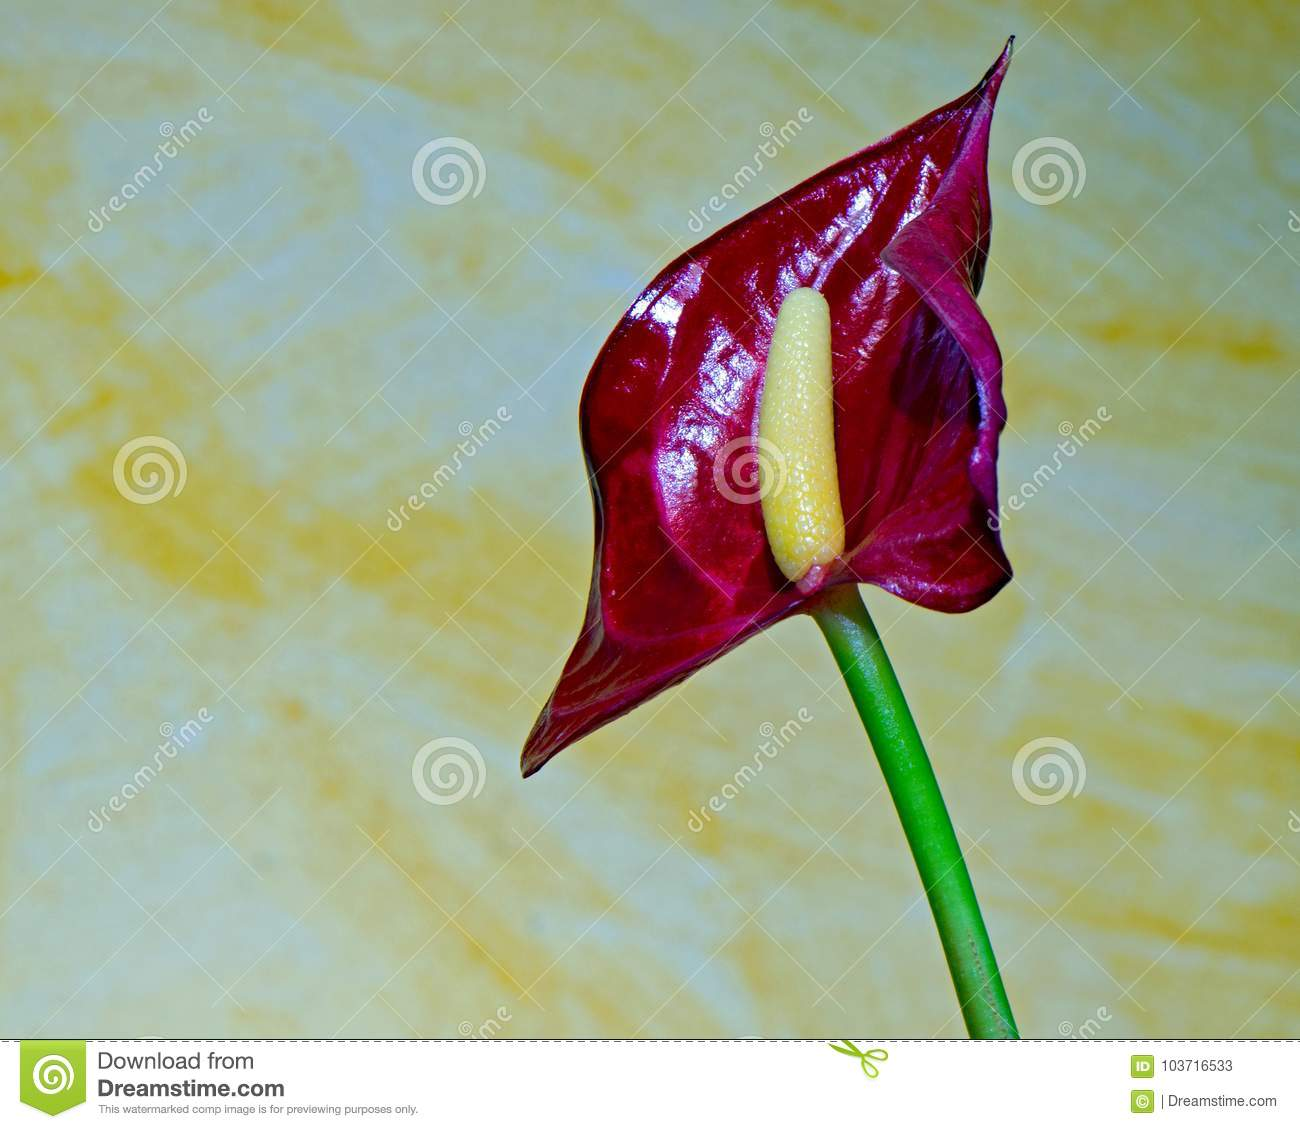 Small House Plants With Flowers Macro Pictures From The Flowers Of Houseplants Stock Image Image